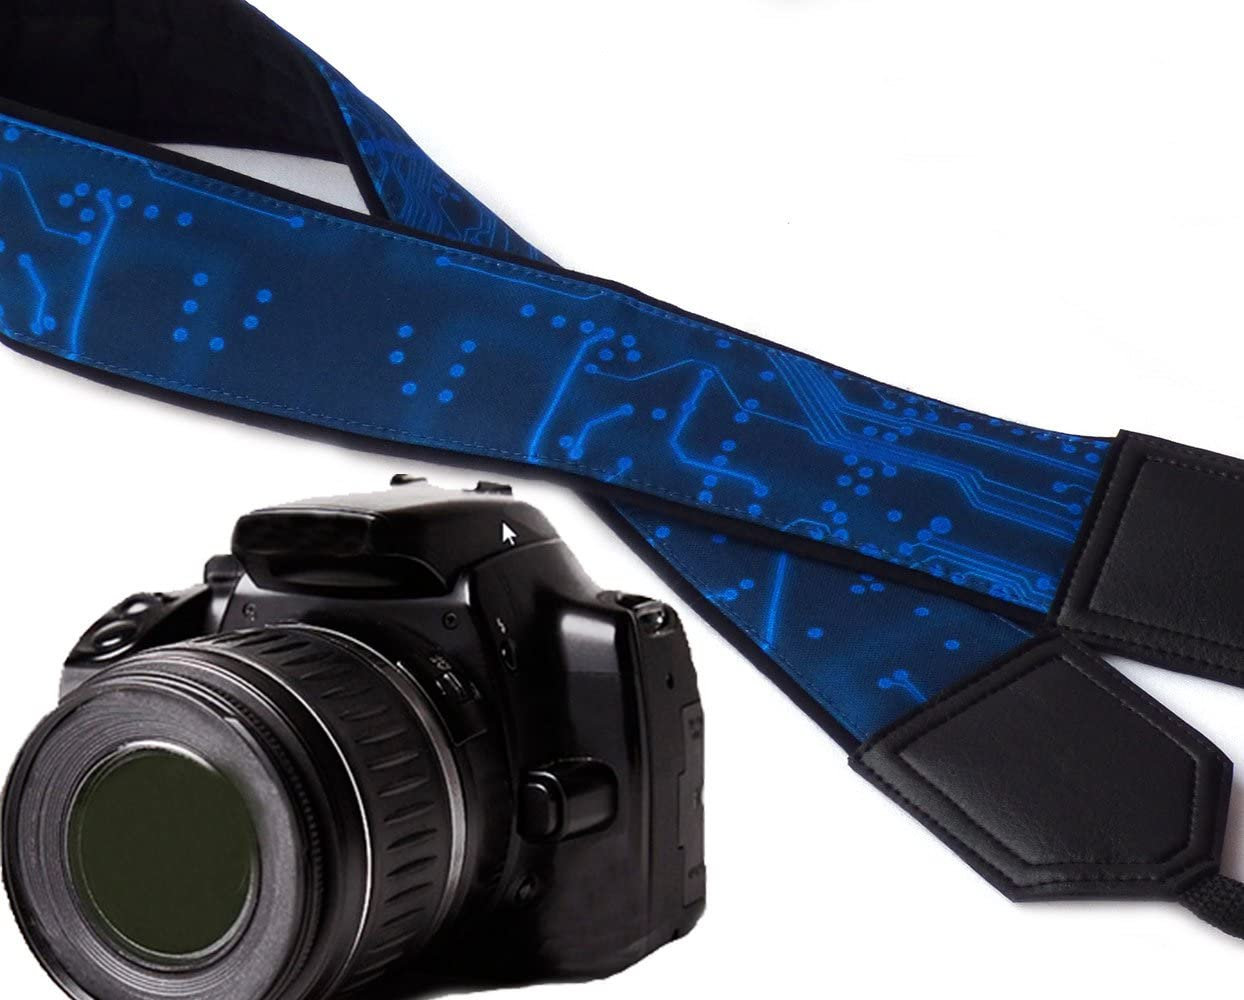 Circuit Board Camera Strap Computer Camera Strap Durable Code 00112 Black and Blue Original DSLR//SLR Camera Strap Microscheme Camera Strap Light Weight and Well Padded Camera Strap